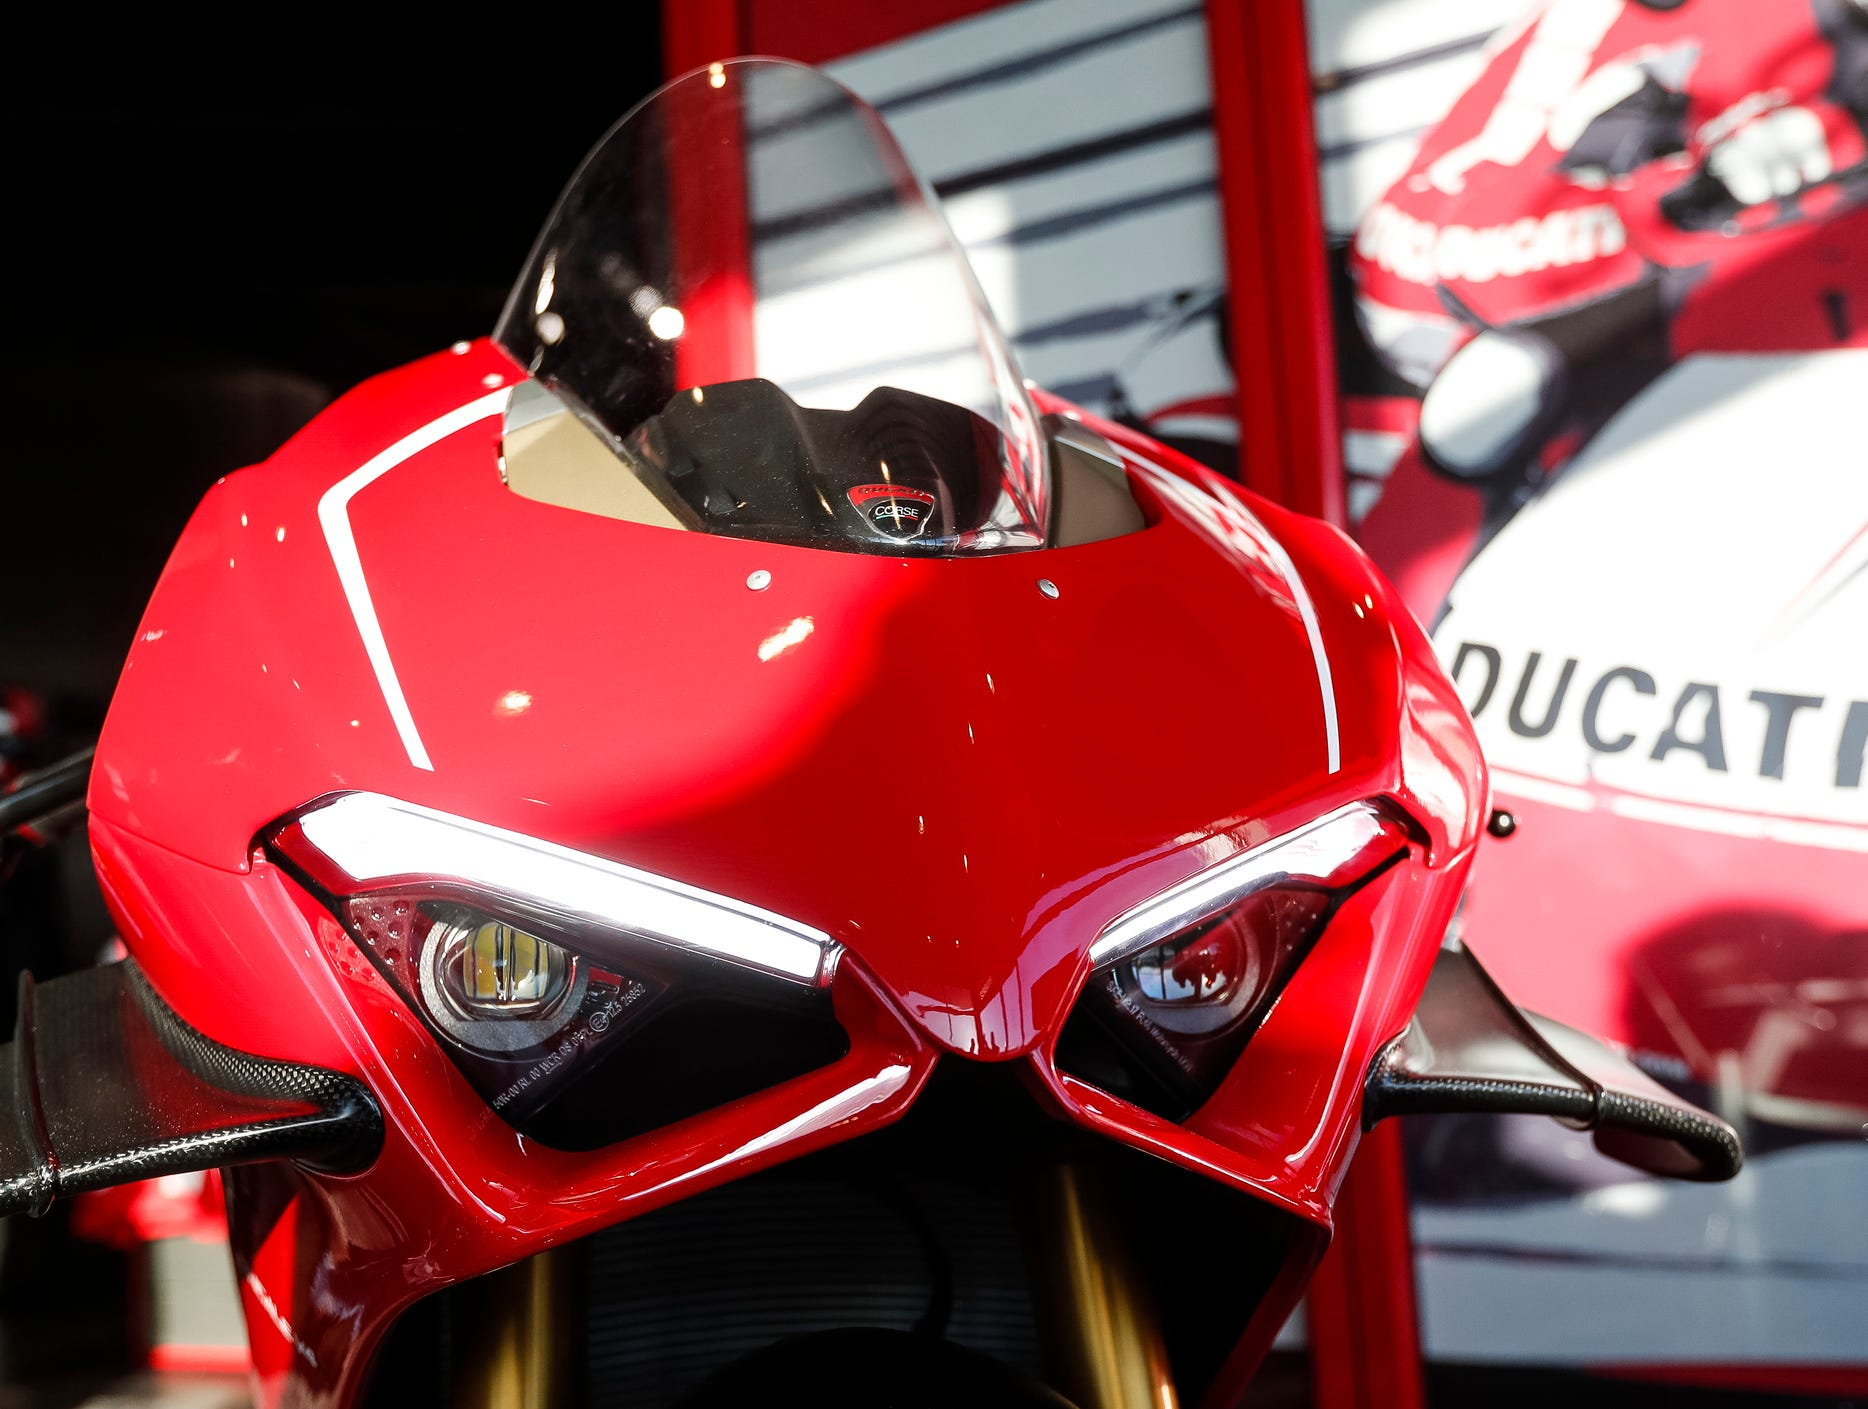 Headlight of the Ducati 2019 Panigale V4 R.